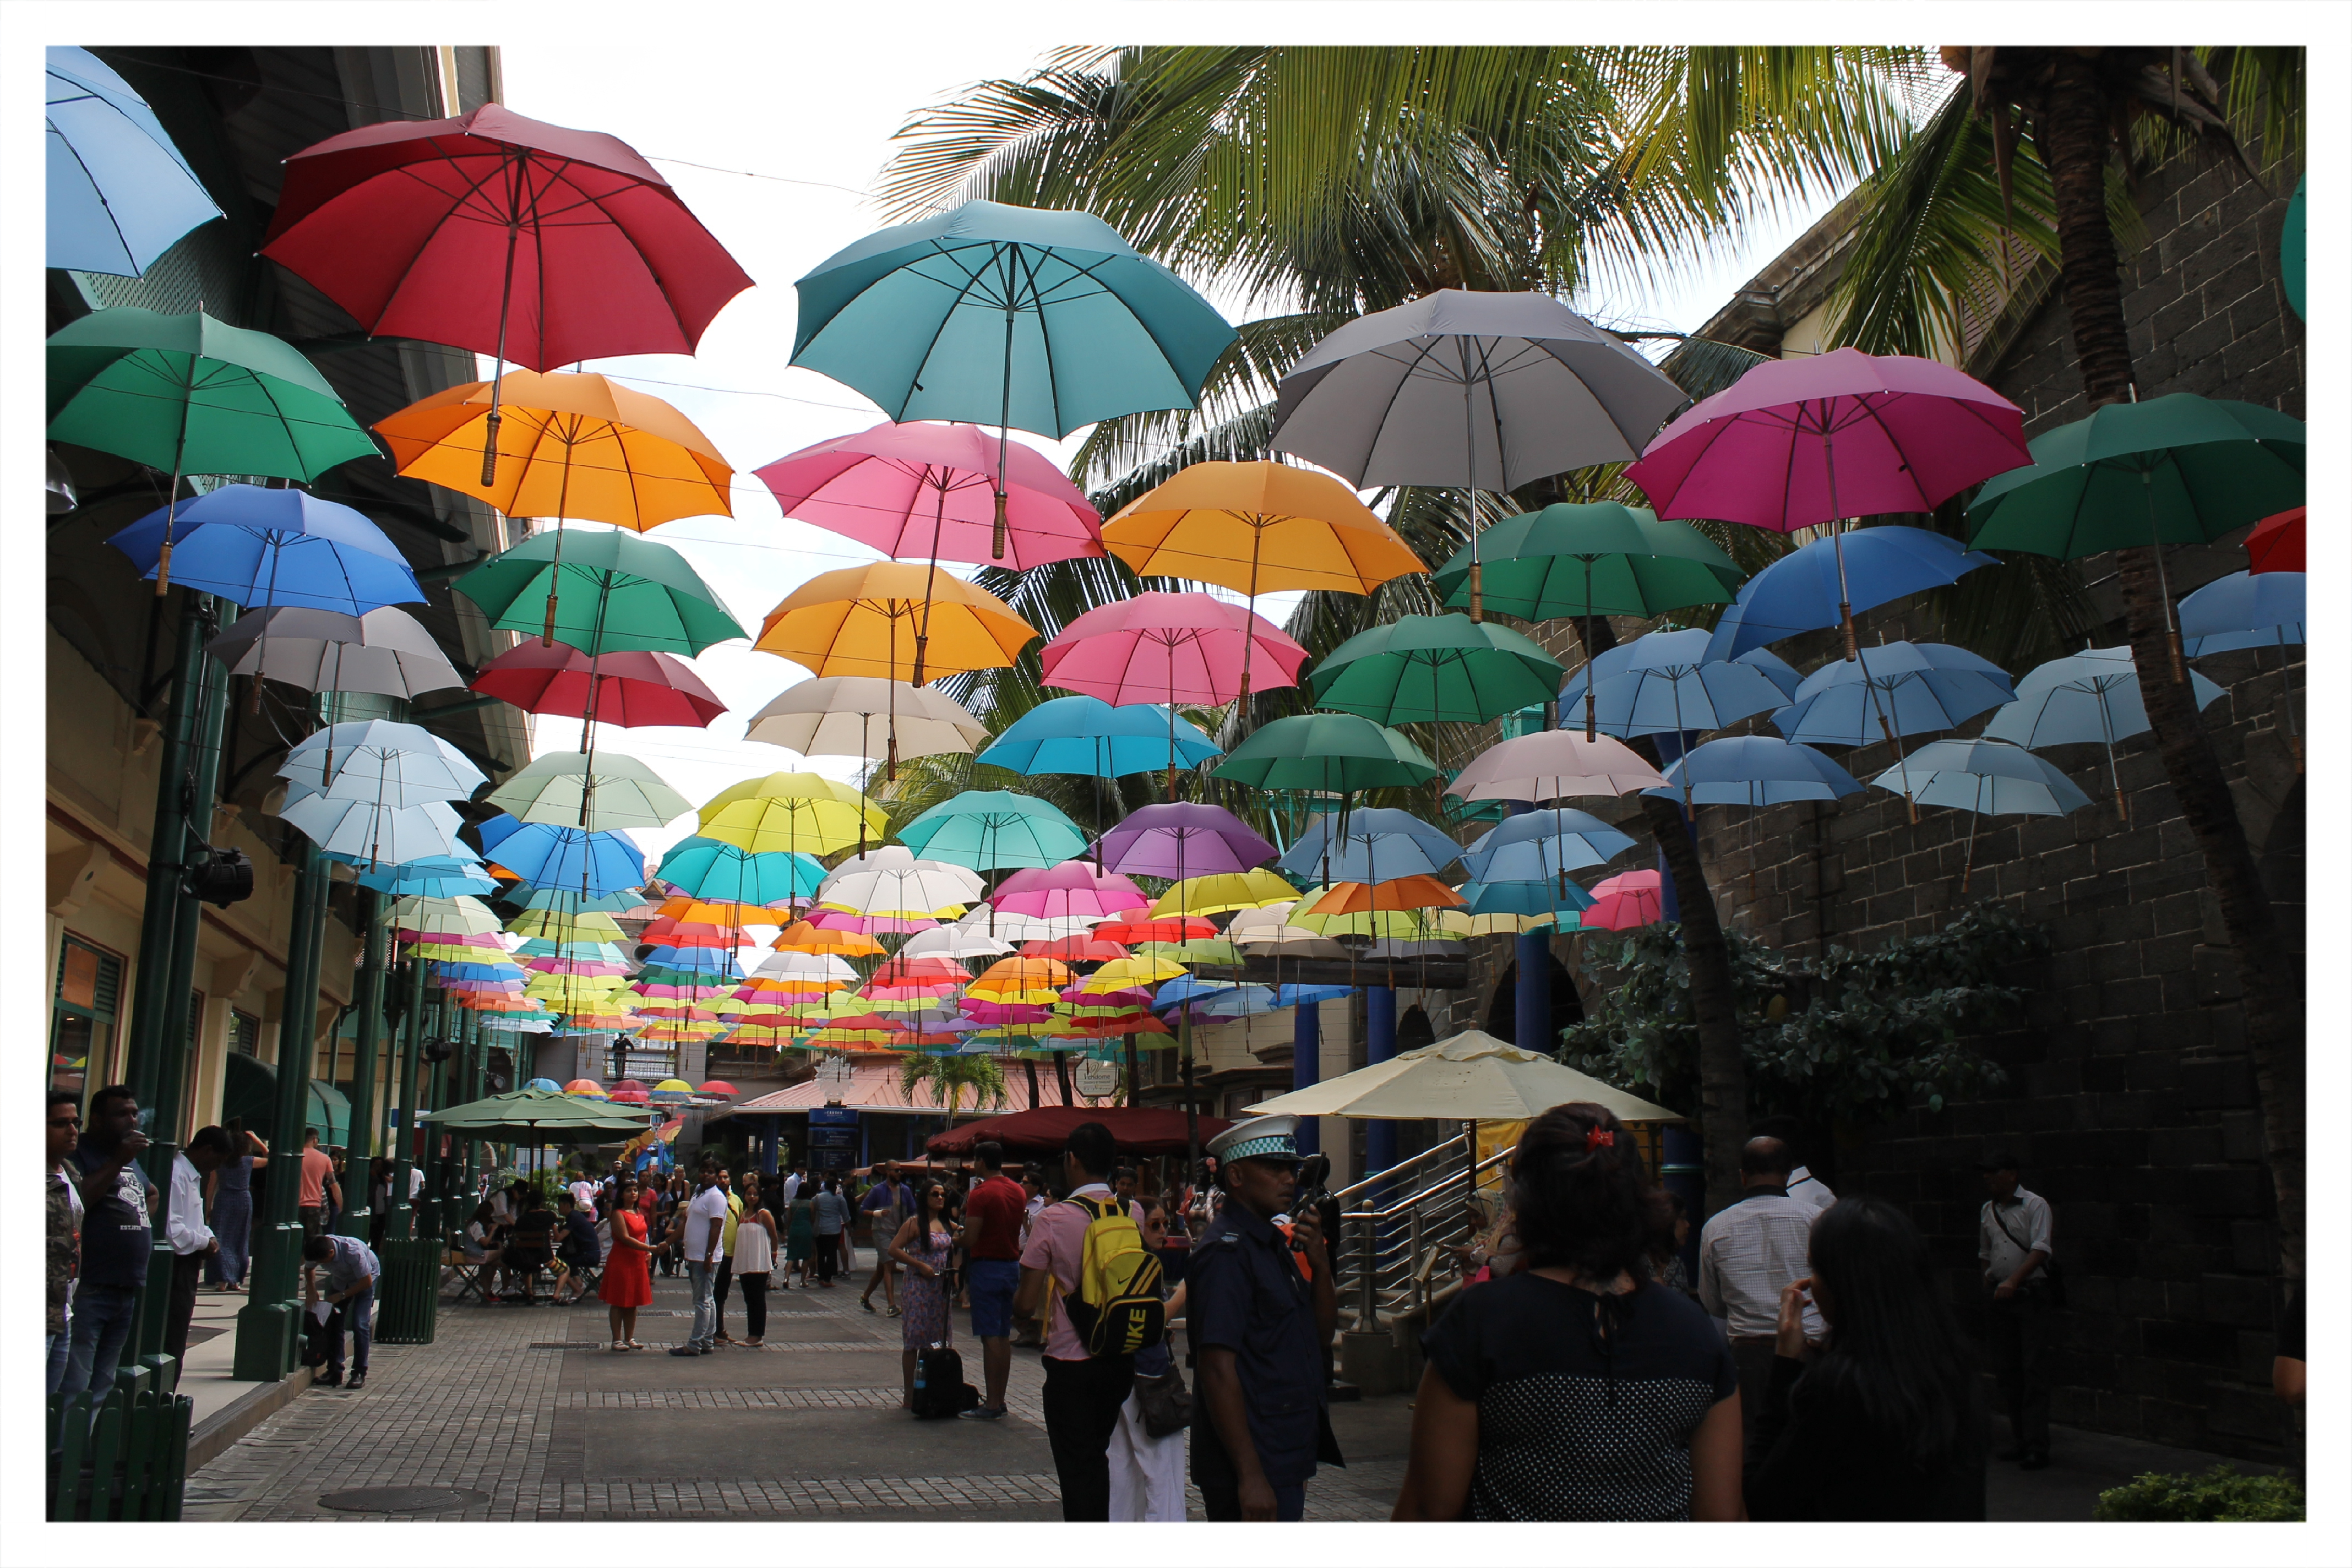 Port Louis Market, I would rather call it Rainbow Market!